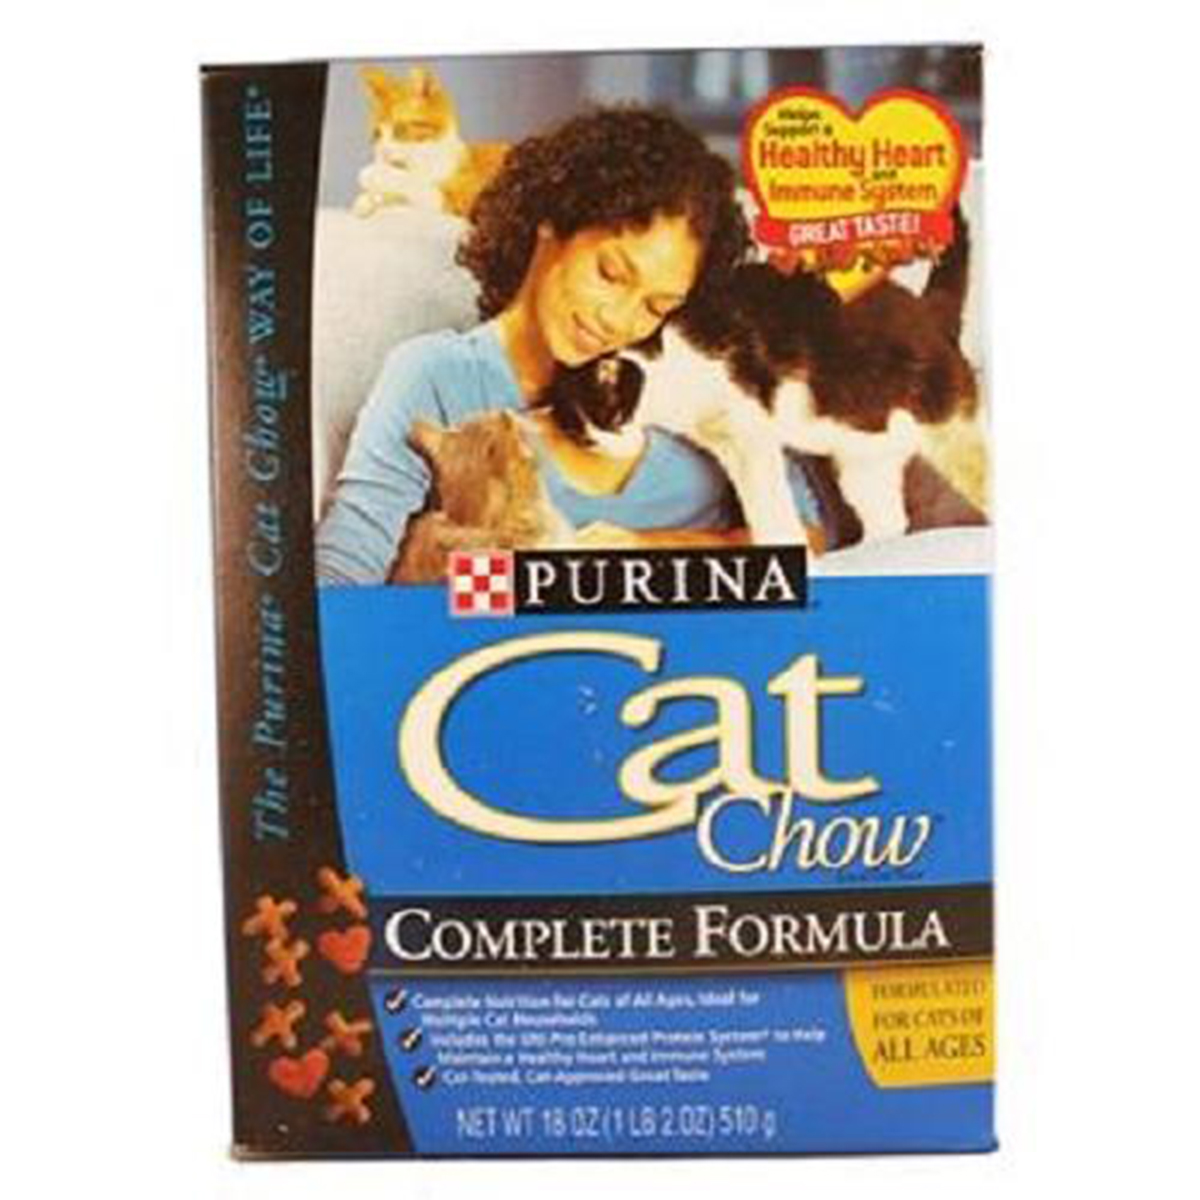 Purina Cat Chow Complete Formula, 18 oz (Pack of 1)